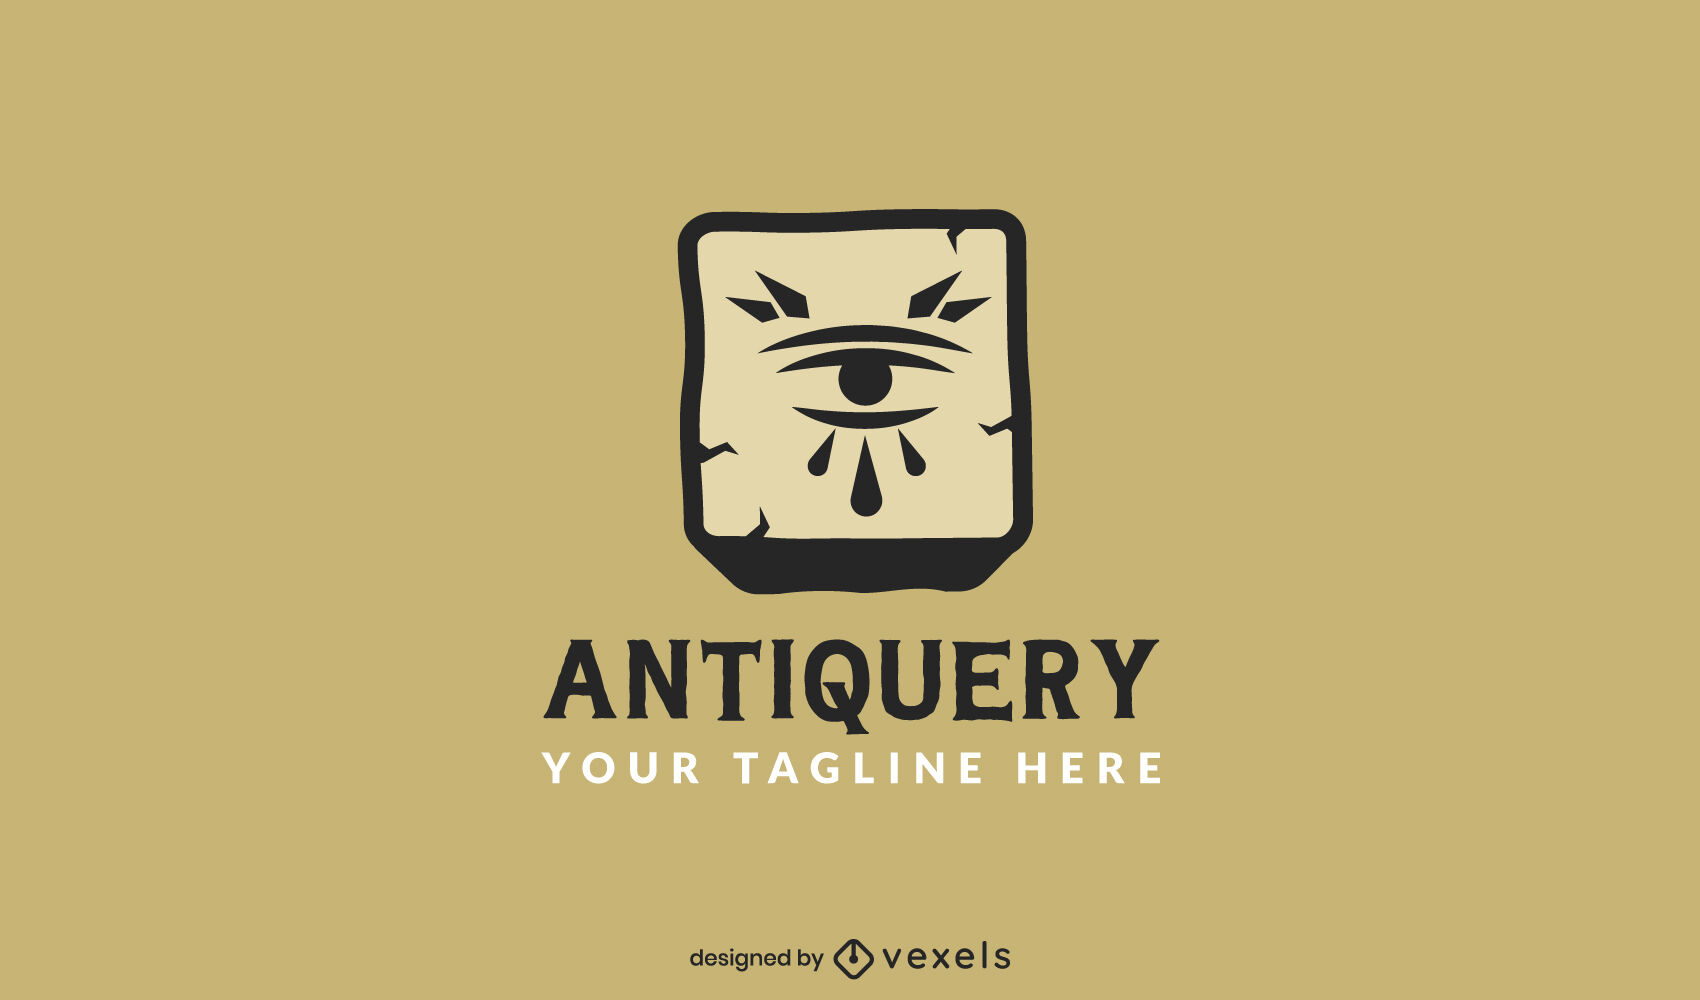 Eye in ancient stone antique logo template